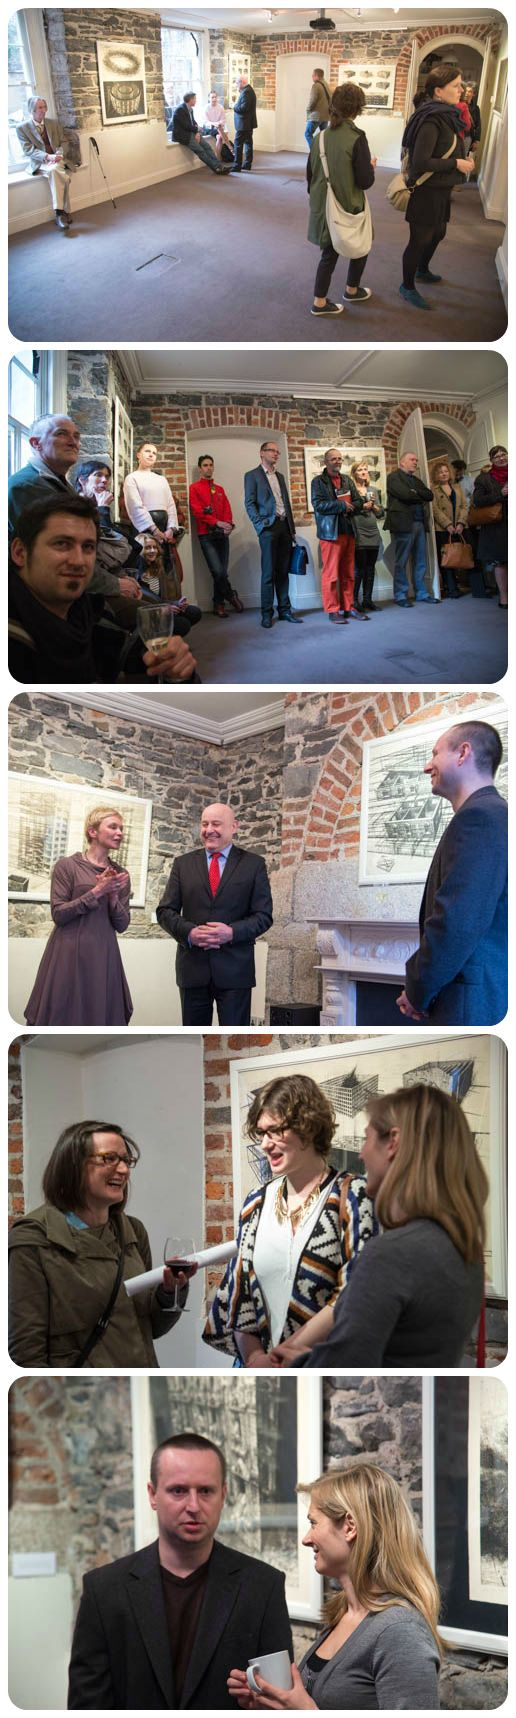 Great opening of Marcin Bialas Exhibition on Thursday with the Polish ambassador & the artist himself! Thanks!